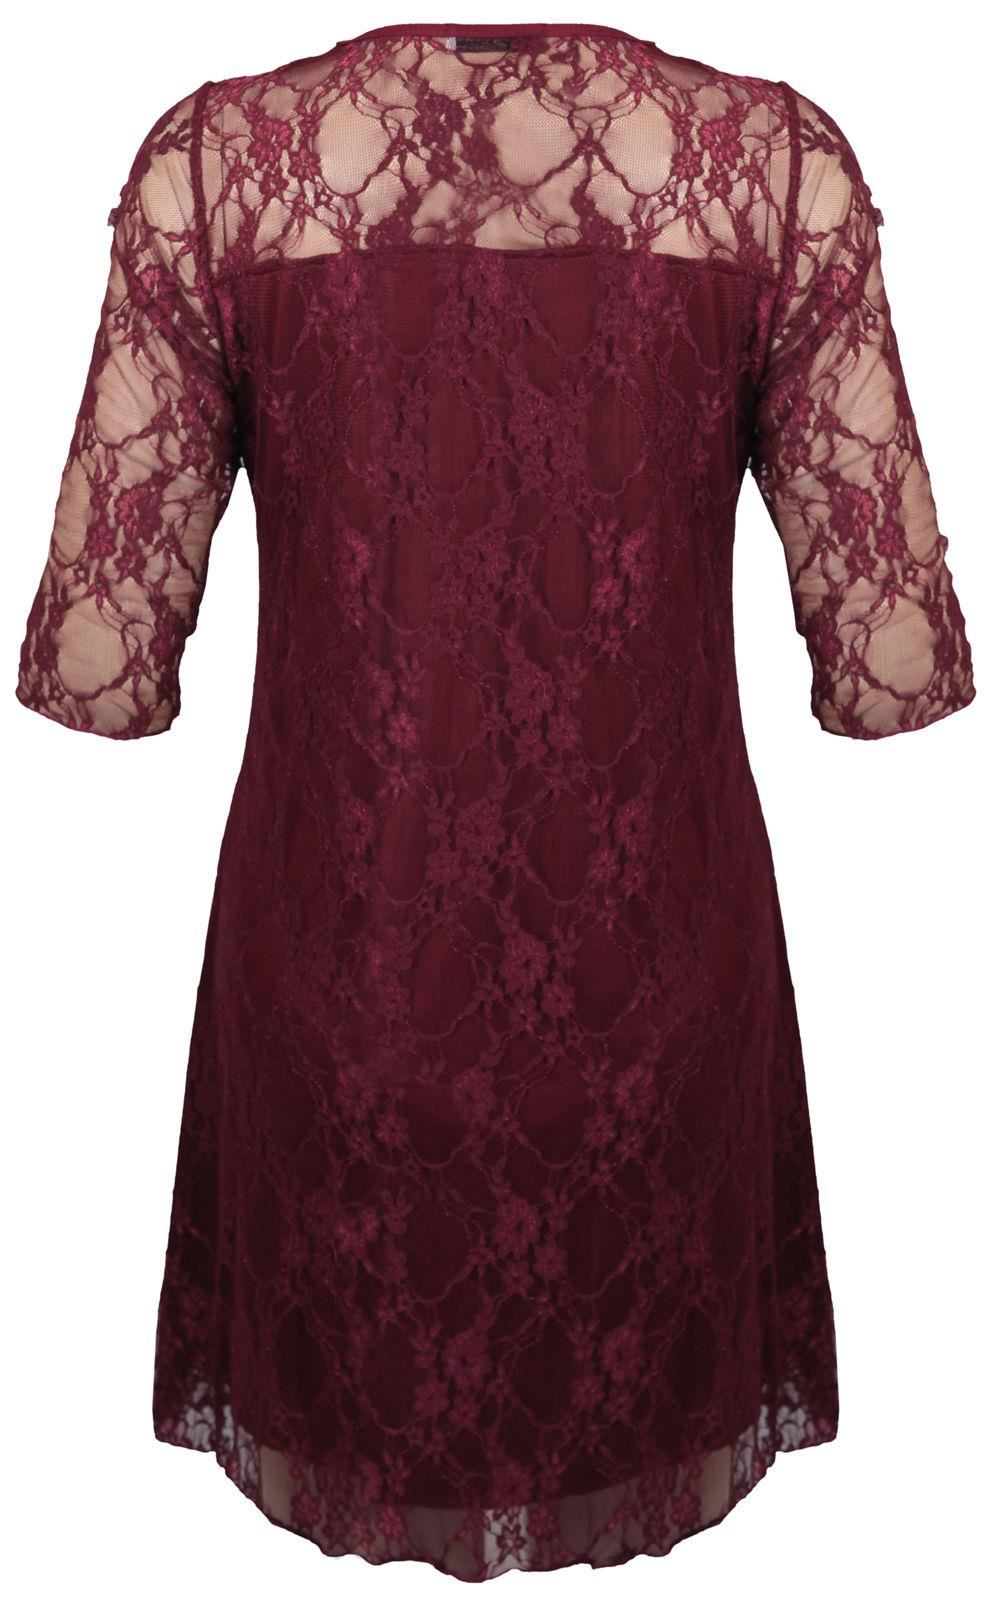 New Ladies Plus Size Contrast Colored Lace Lined Party Dress 14-28